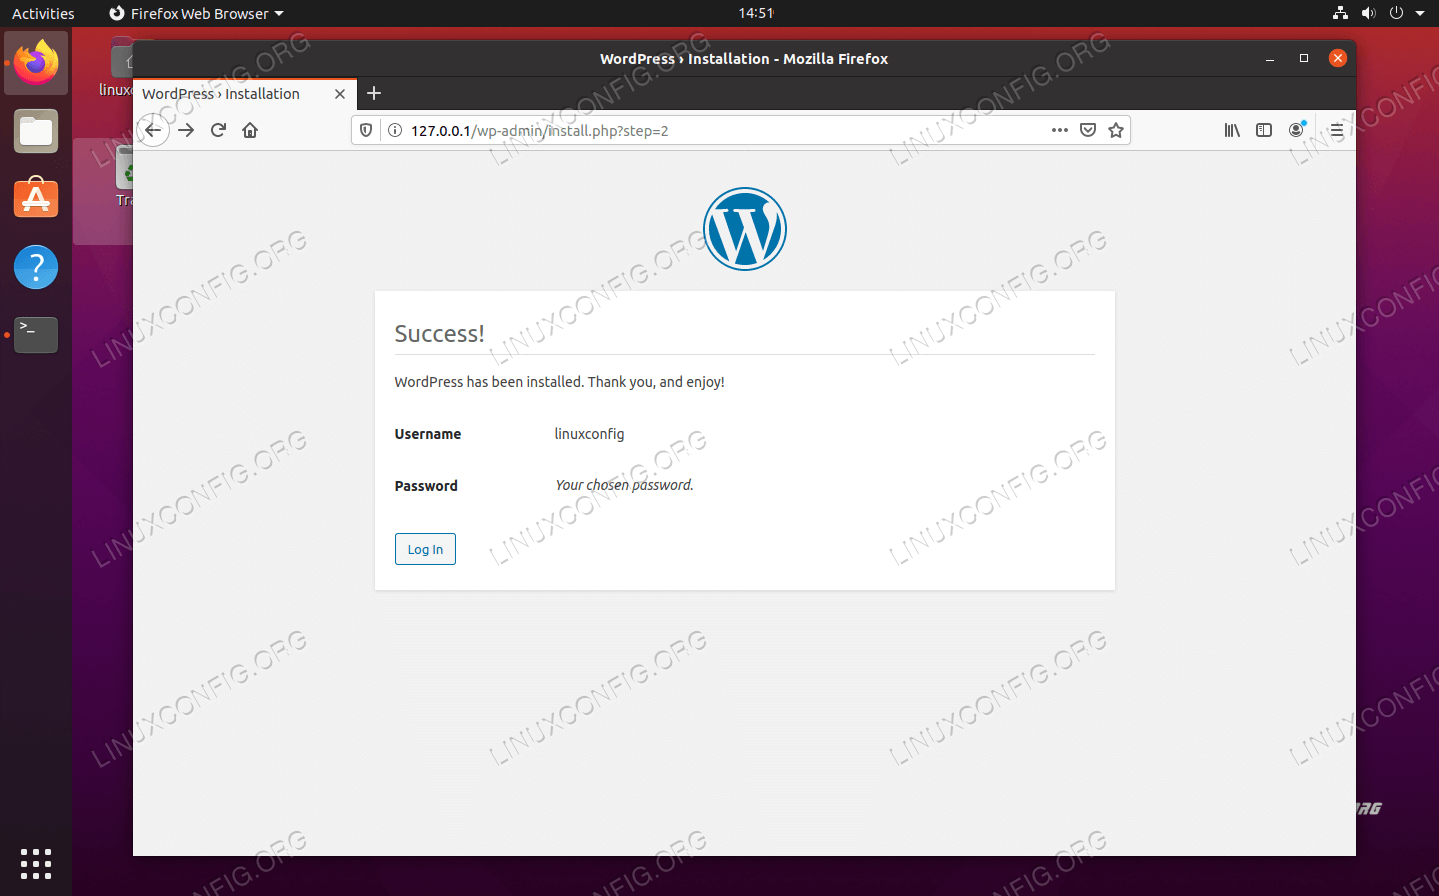 WordPress installation has completed successfully